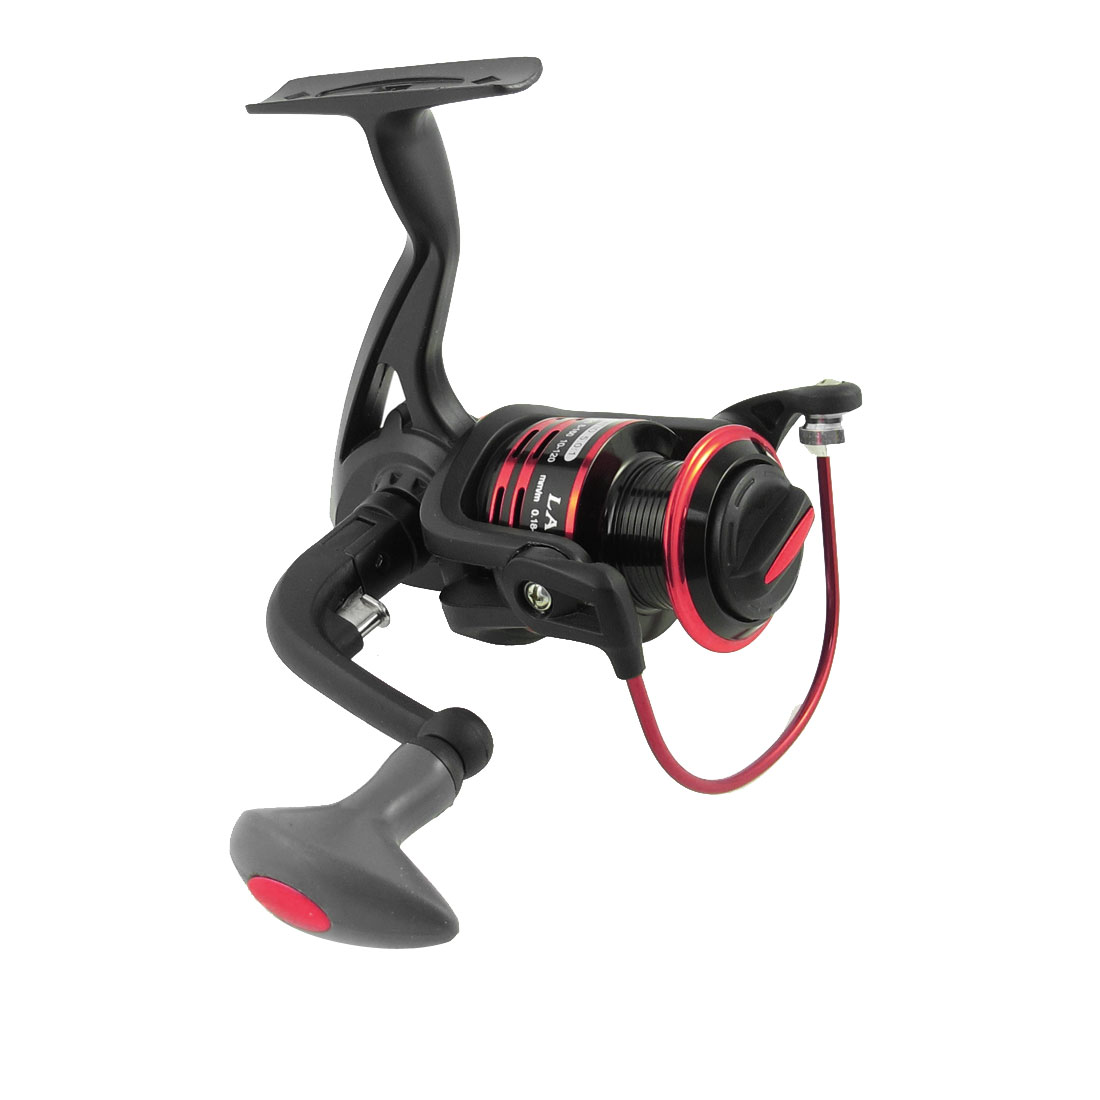 Red Black 5.0:1 Gear Ratio 11 Ball Bearings Folding Fishing Spinning Reel